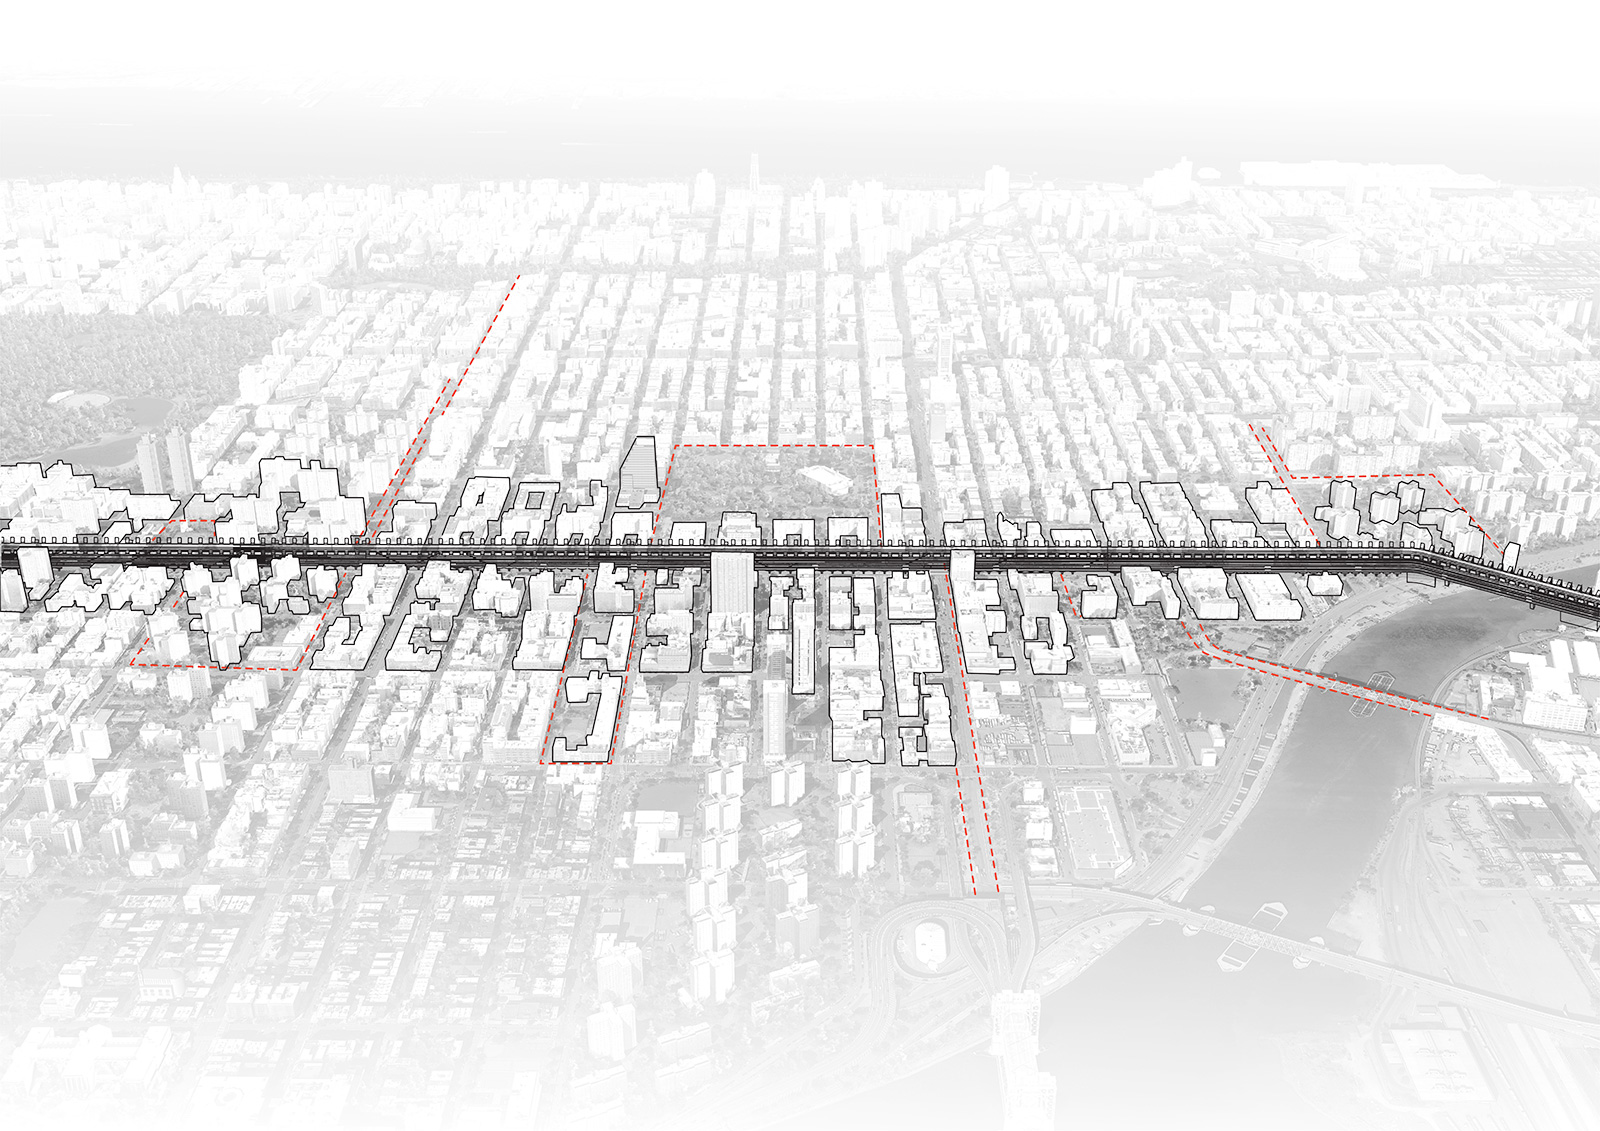 Aerial perspective showing the ININ infill massing along Park Avenue on Manhattan as a reaction to housing needs